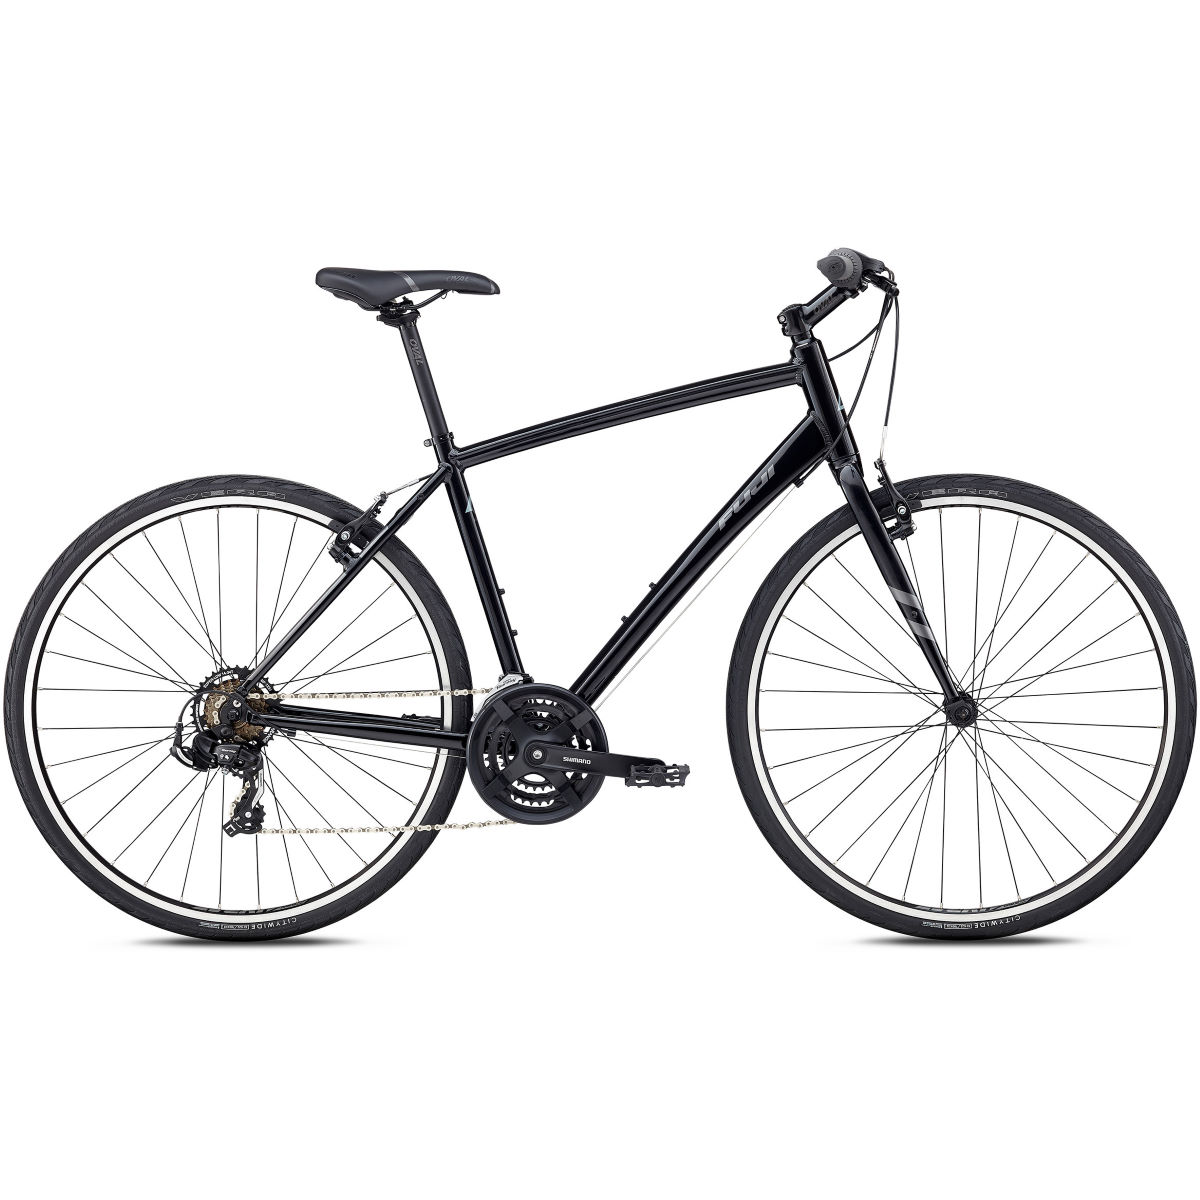 Fuji Absolute 2.3 City Bike - Bicicletas de ciudad e híbridas